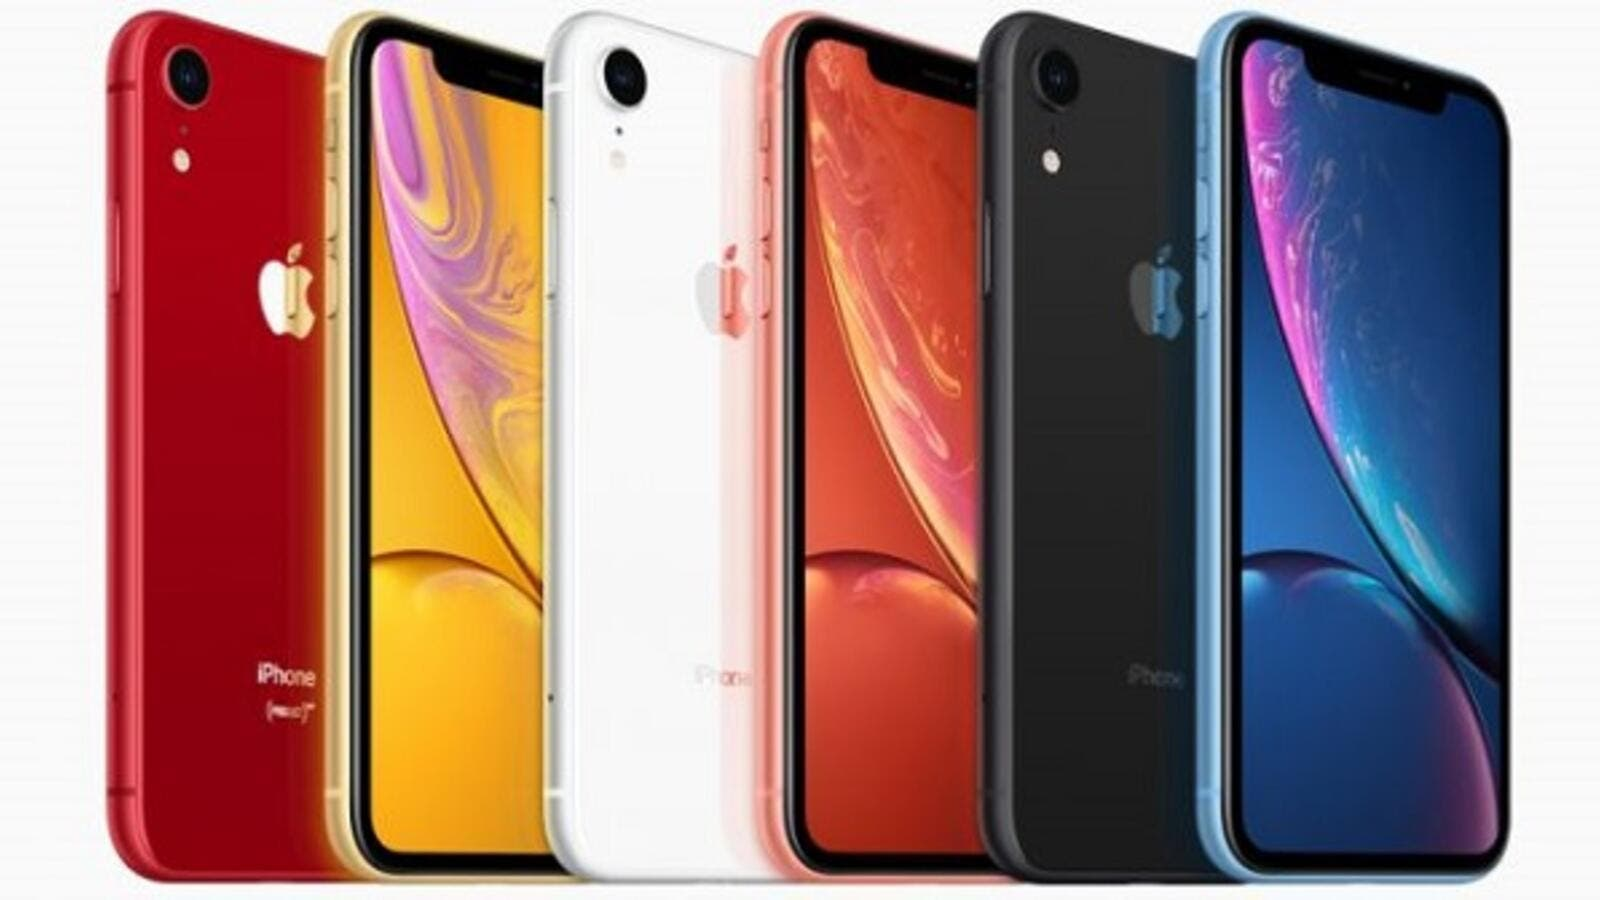 The iPhone XR was a success for Apple, thanks to its good specs and budget-friendly price.